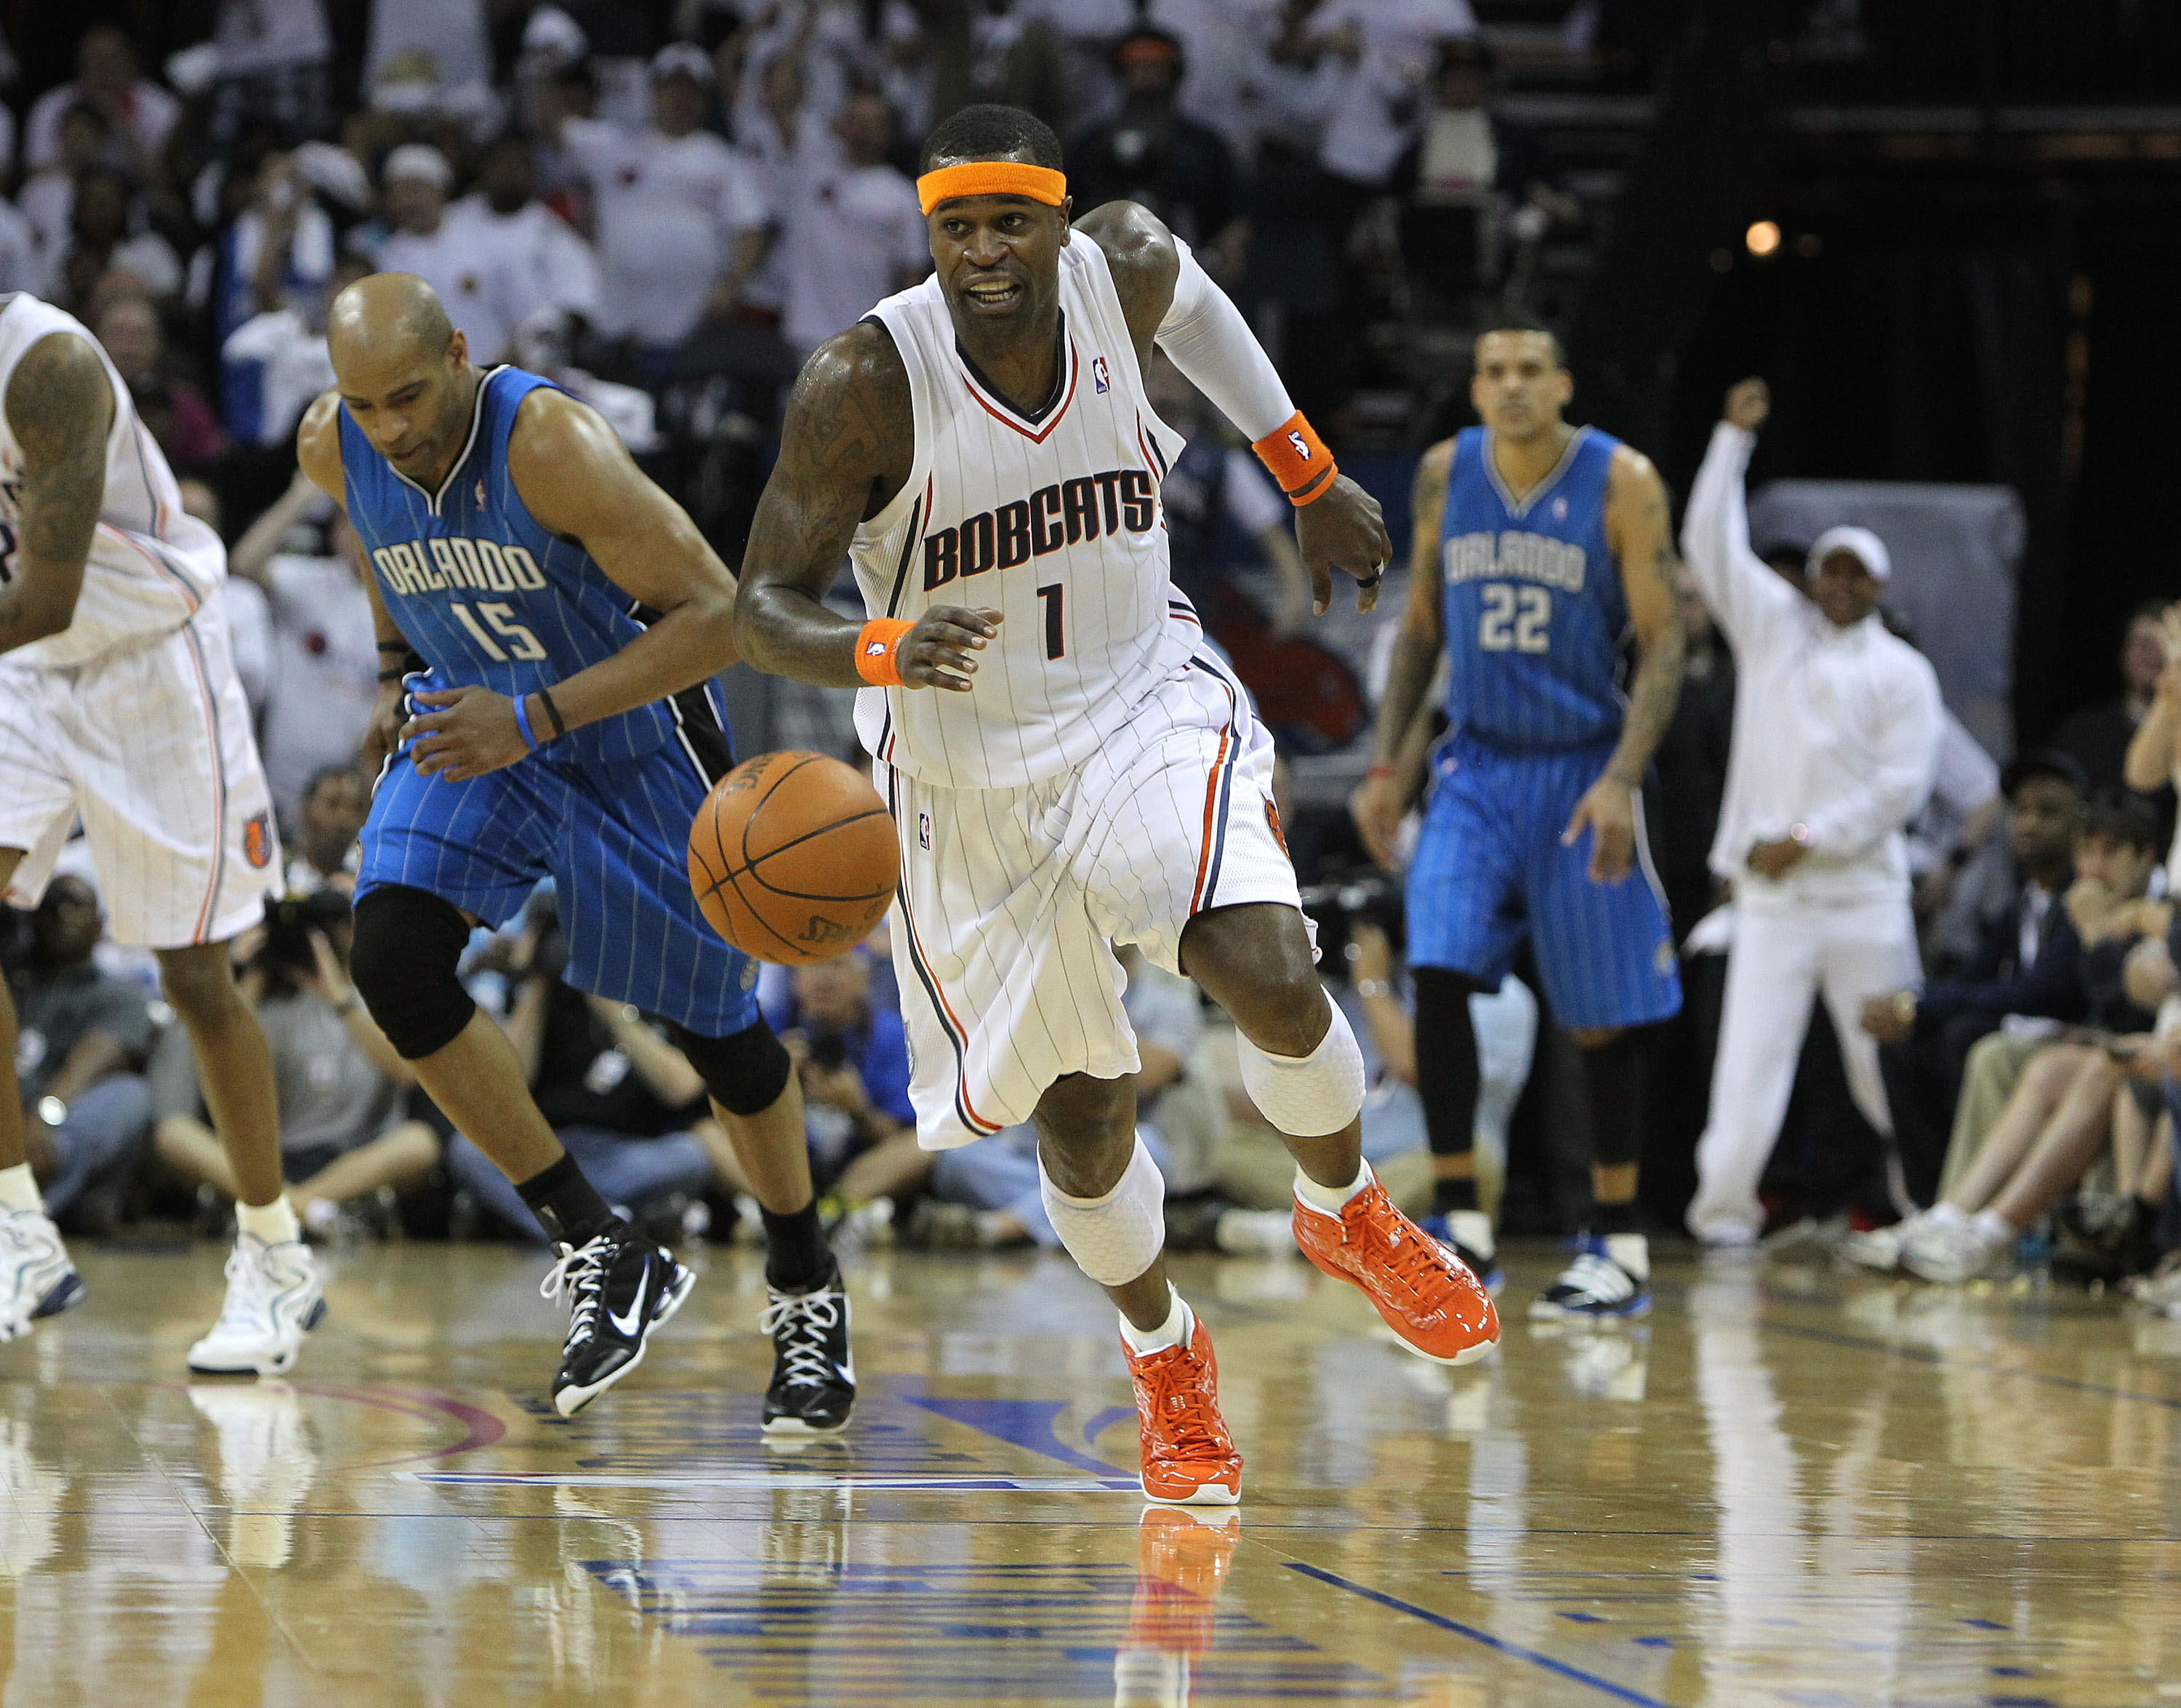 CHARLOTTE, NC - APRIL 24:  Guard Stephen Jackson #1 of the Charlotte Bobcats chases a loose ball while guard Vince Carter #15 of the Orlando Magic pursues during Game Three of the Eastern Conference Quarterfinals during the 2010 NBA Playoffs at Time Warne